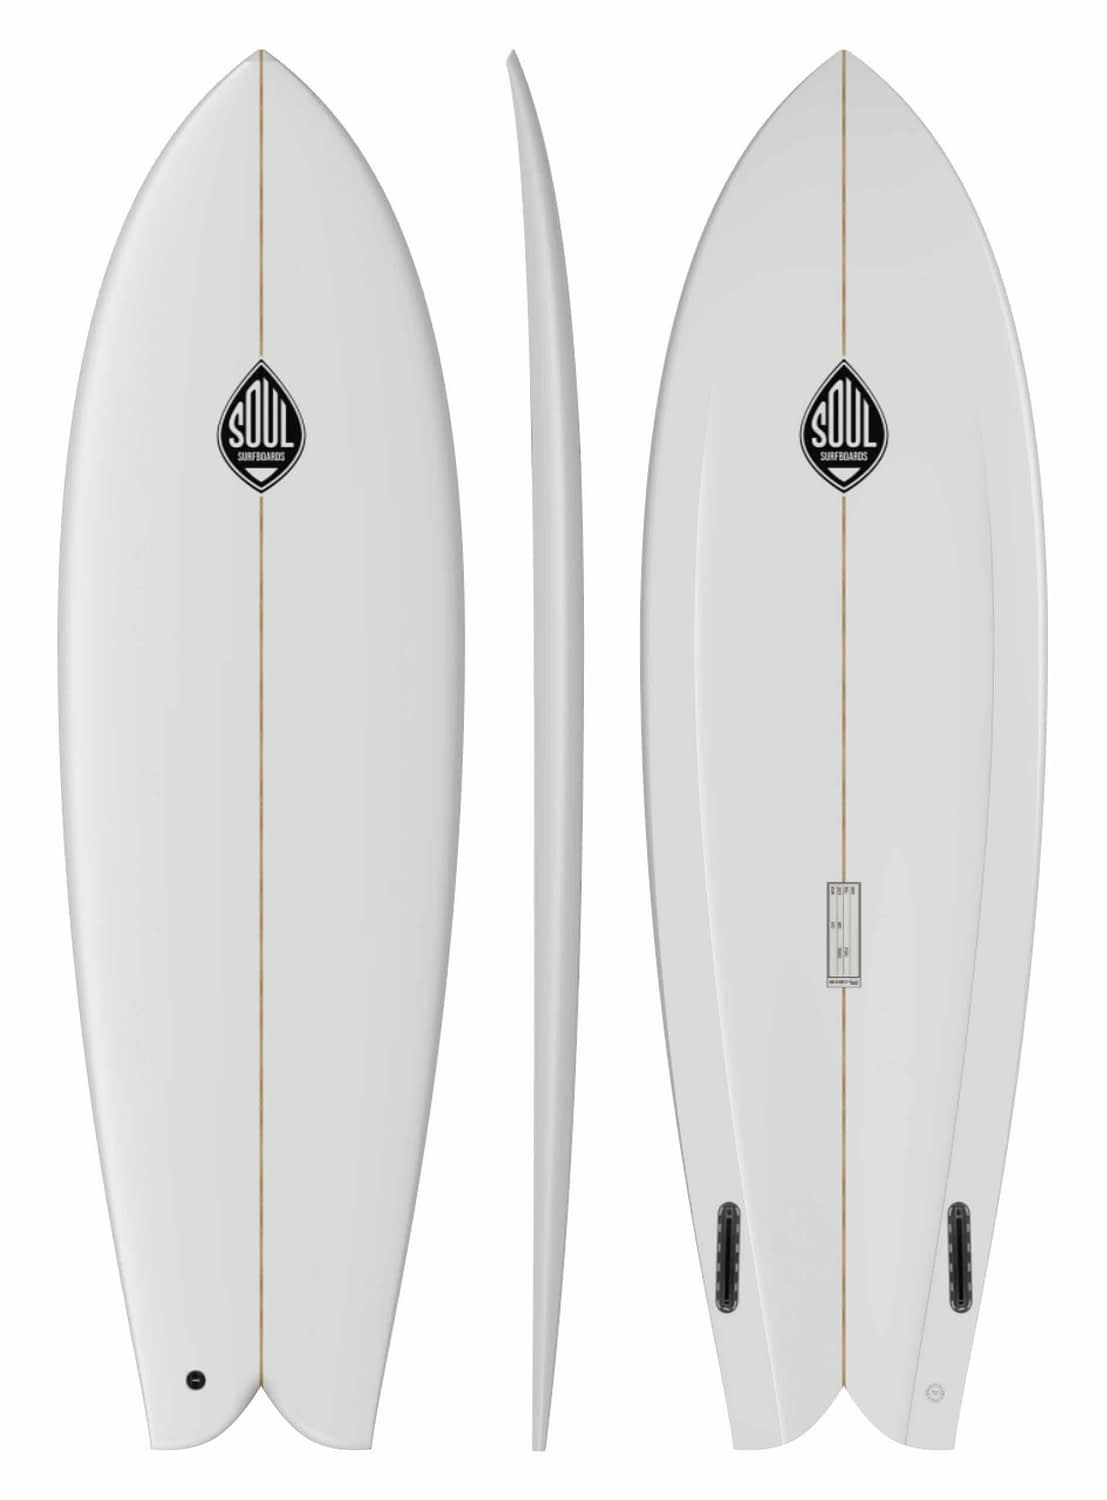 SPEED FISH SOUL SURFBOARDS